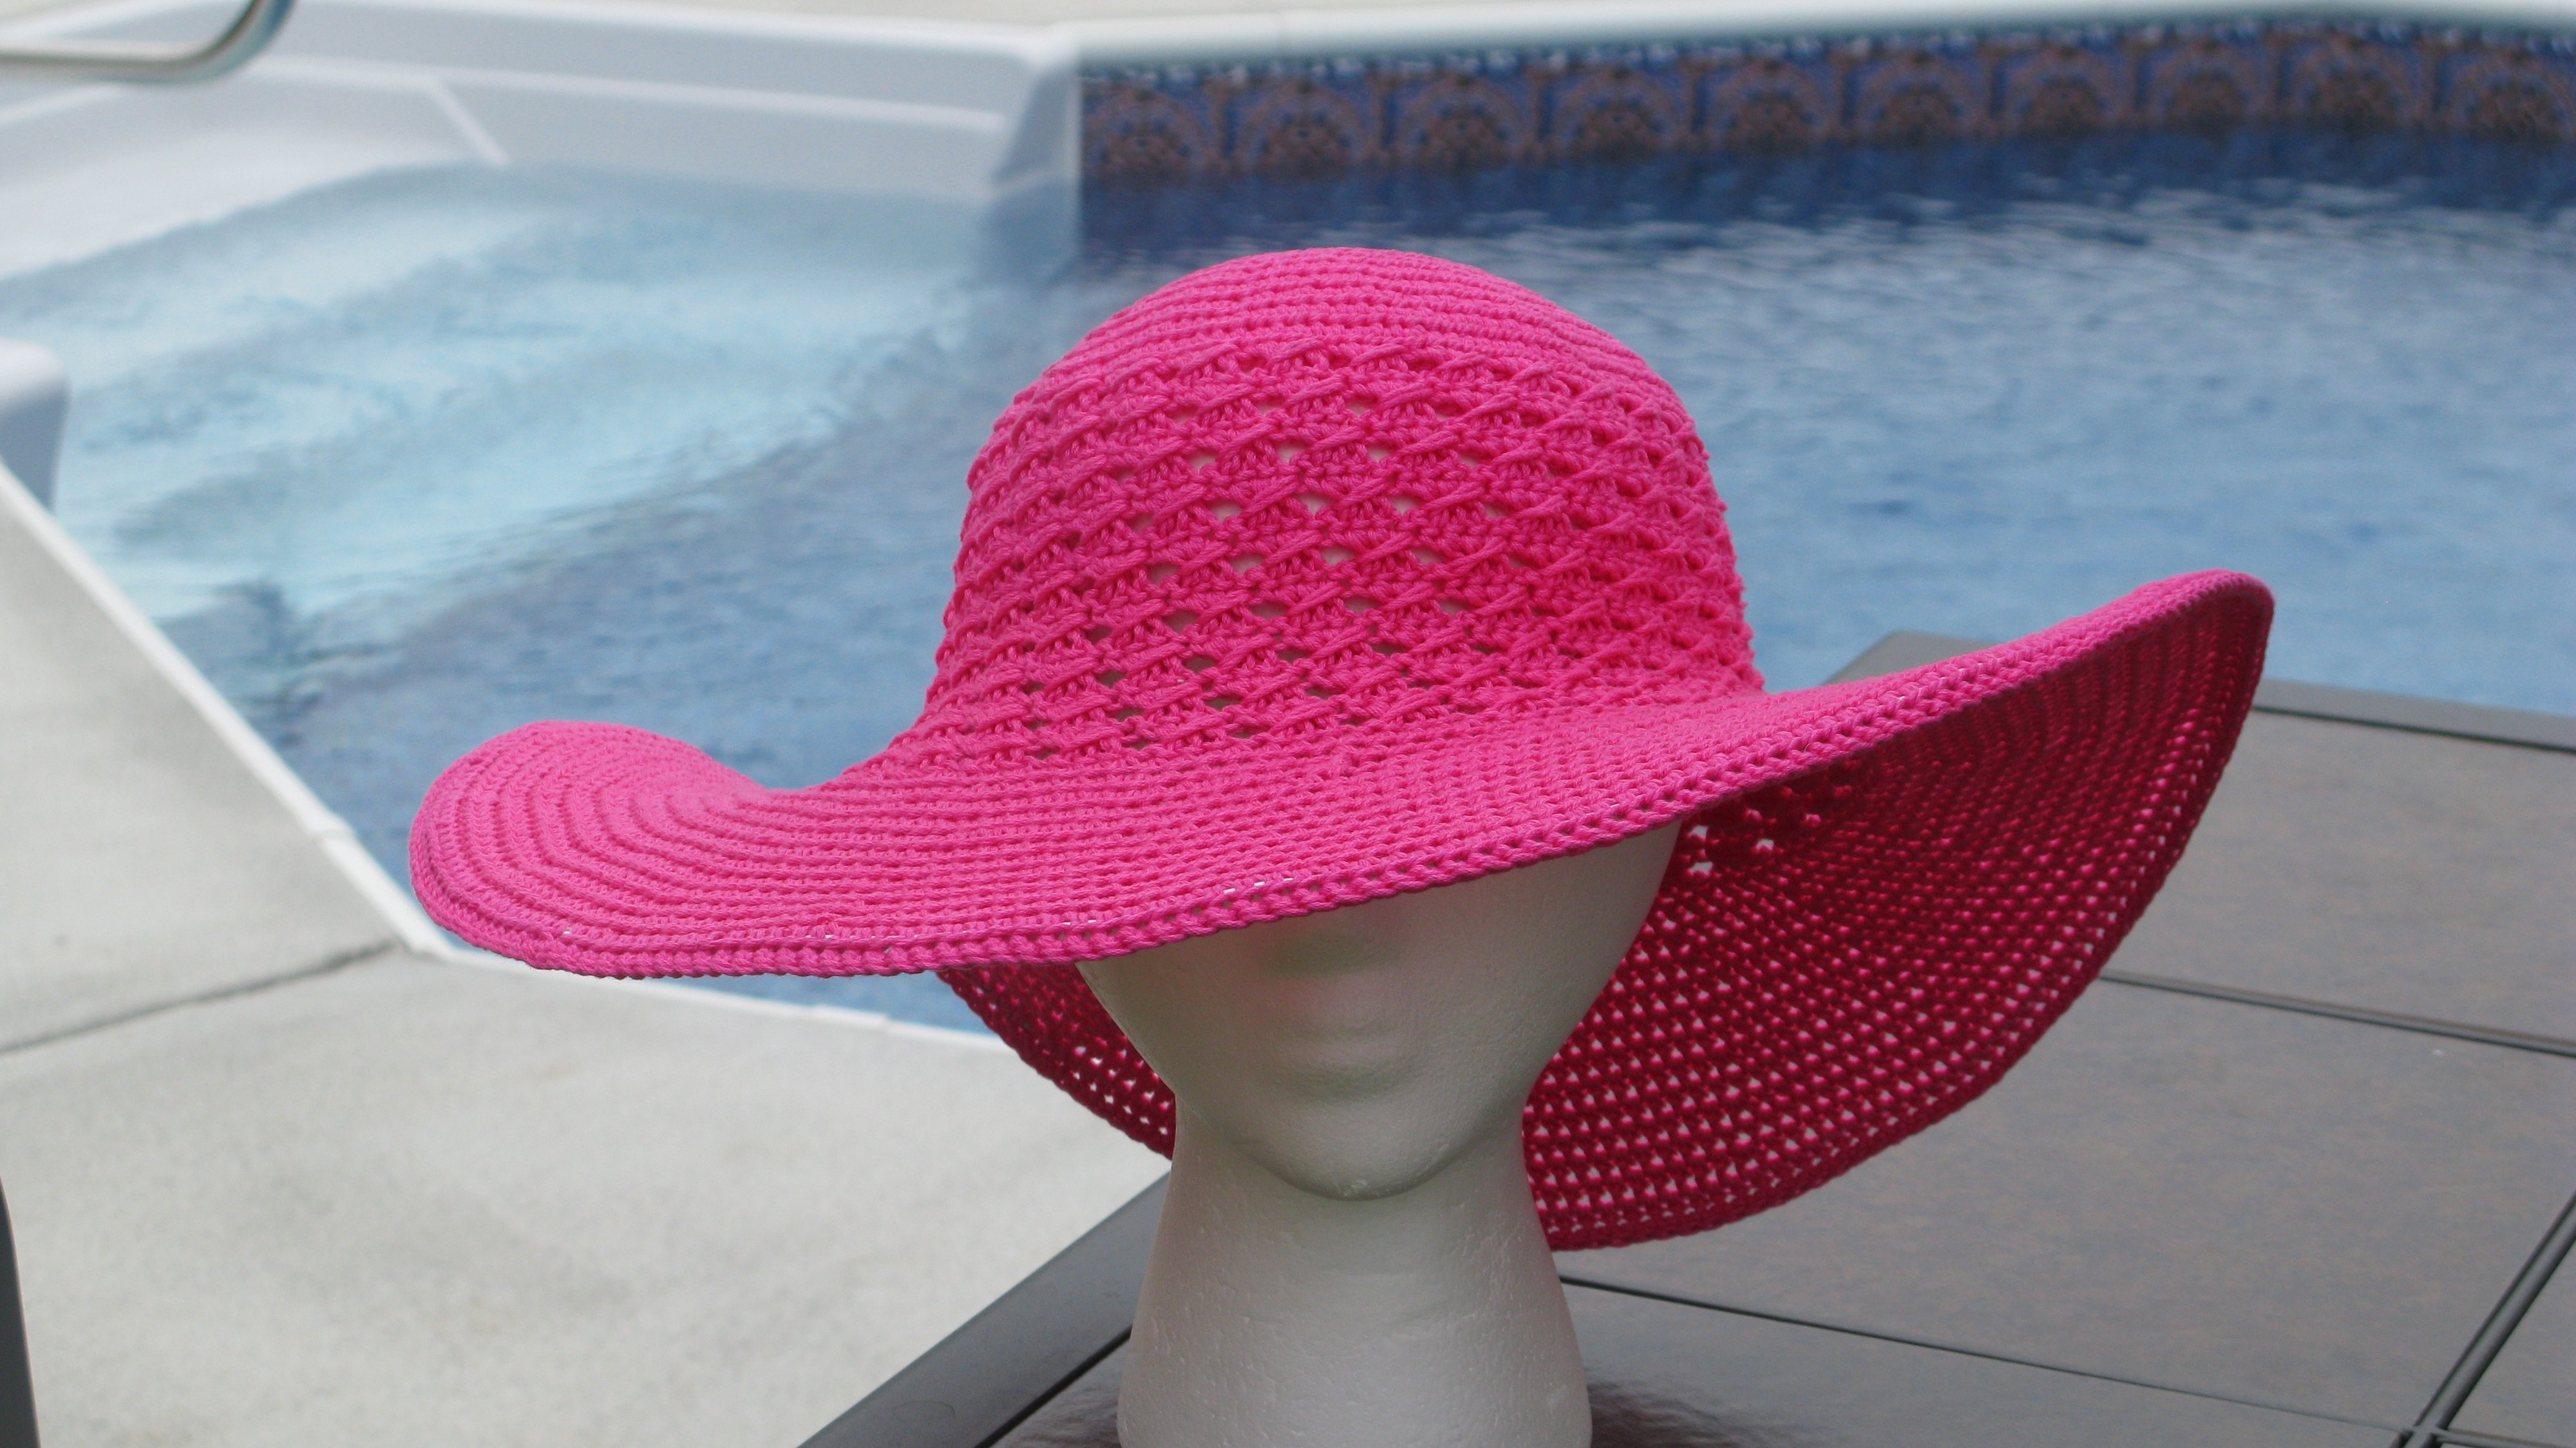 kathy sinfonia Summer Beach Hats 008